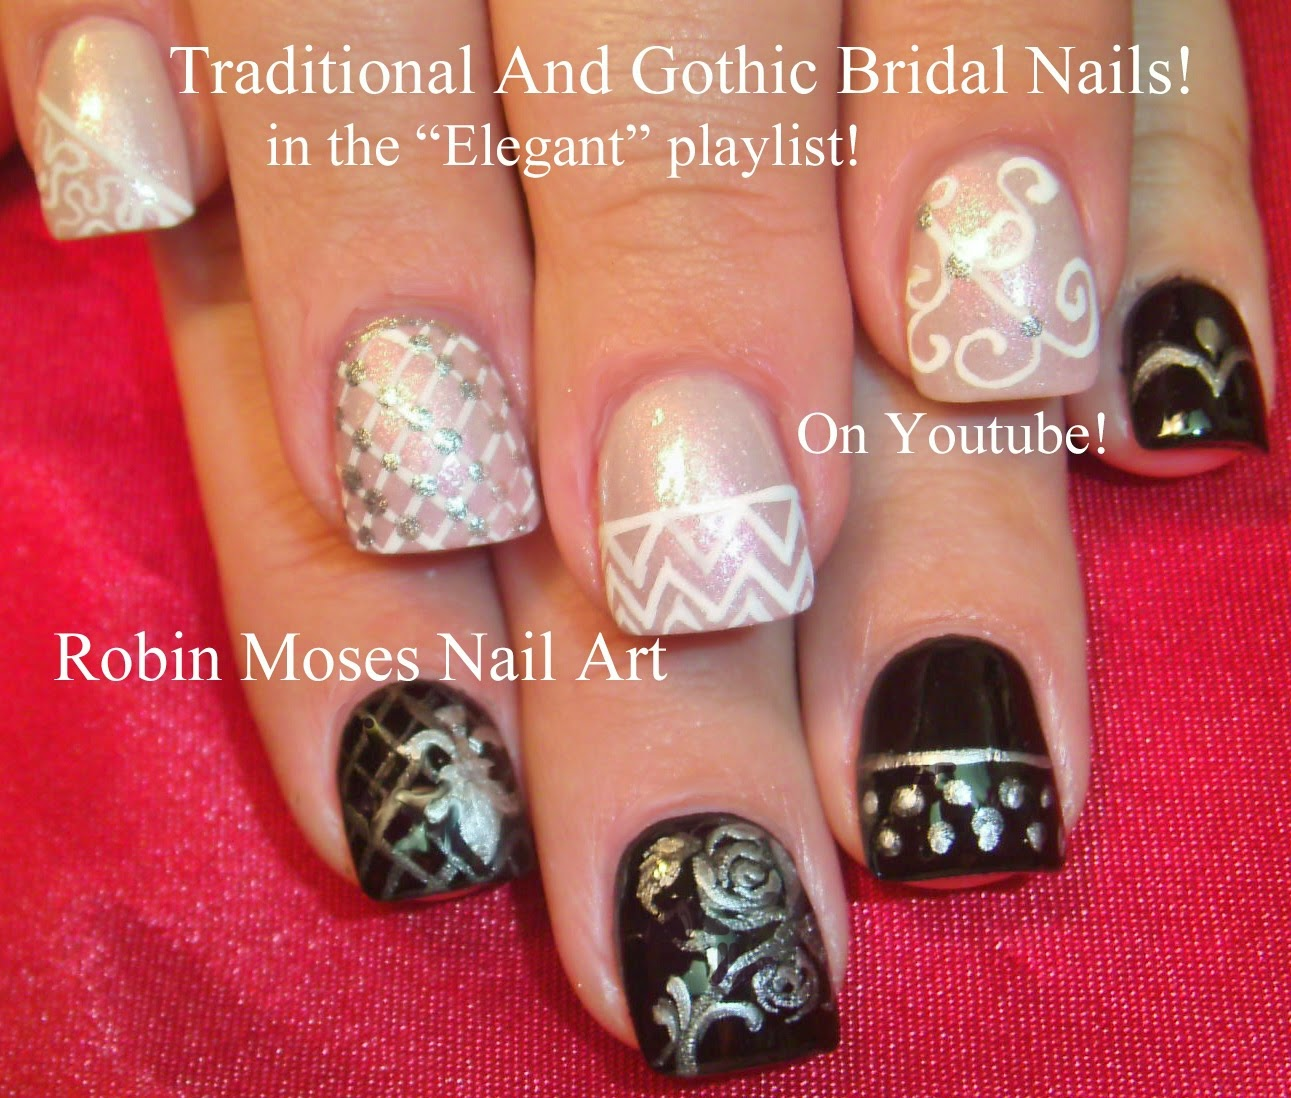 Robin moses nail art black and white nails nail art black black and white nails nail art black and white nail art black nail art white nail art wedding nails black nails formal nails black tie prinsesfo Image collections